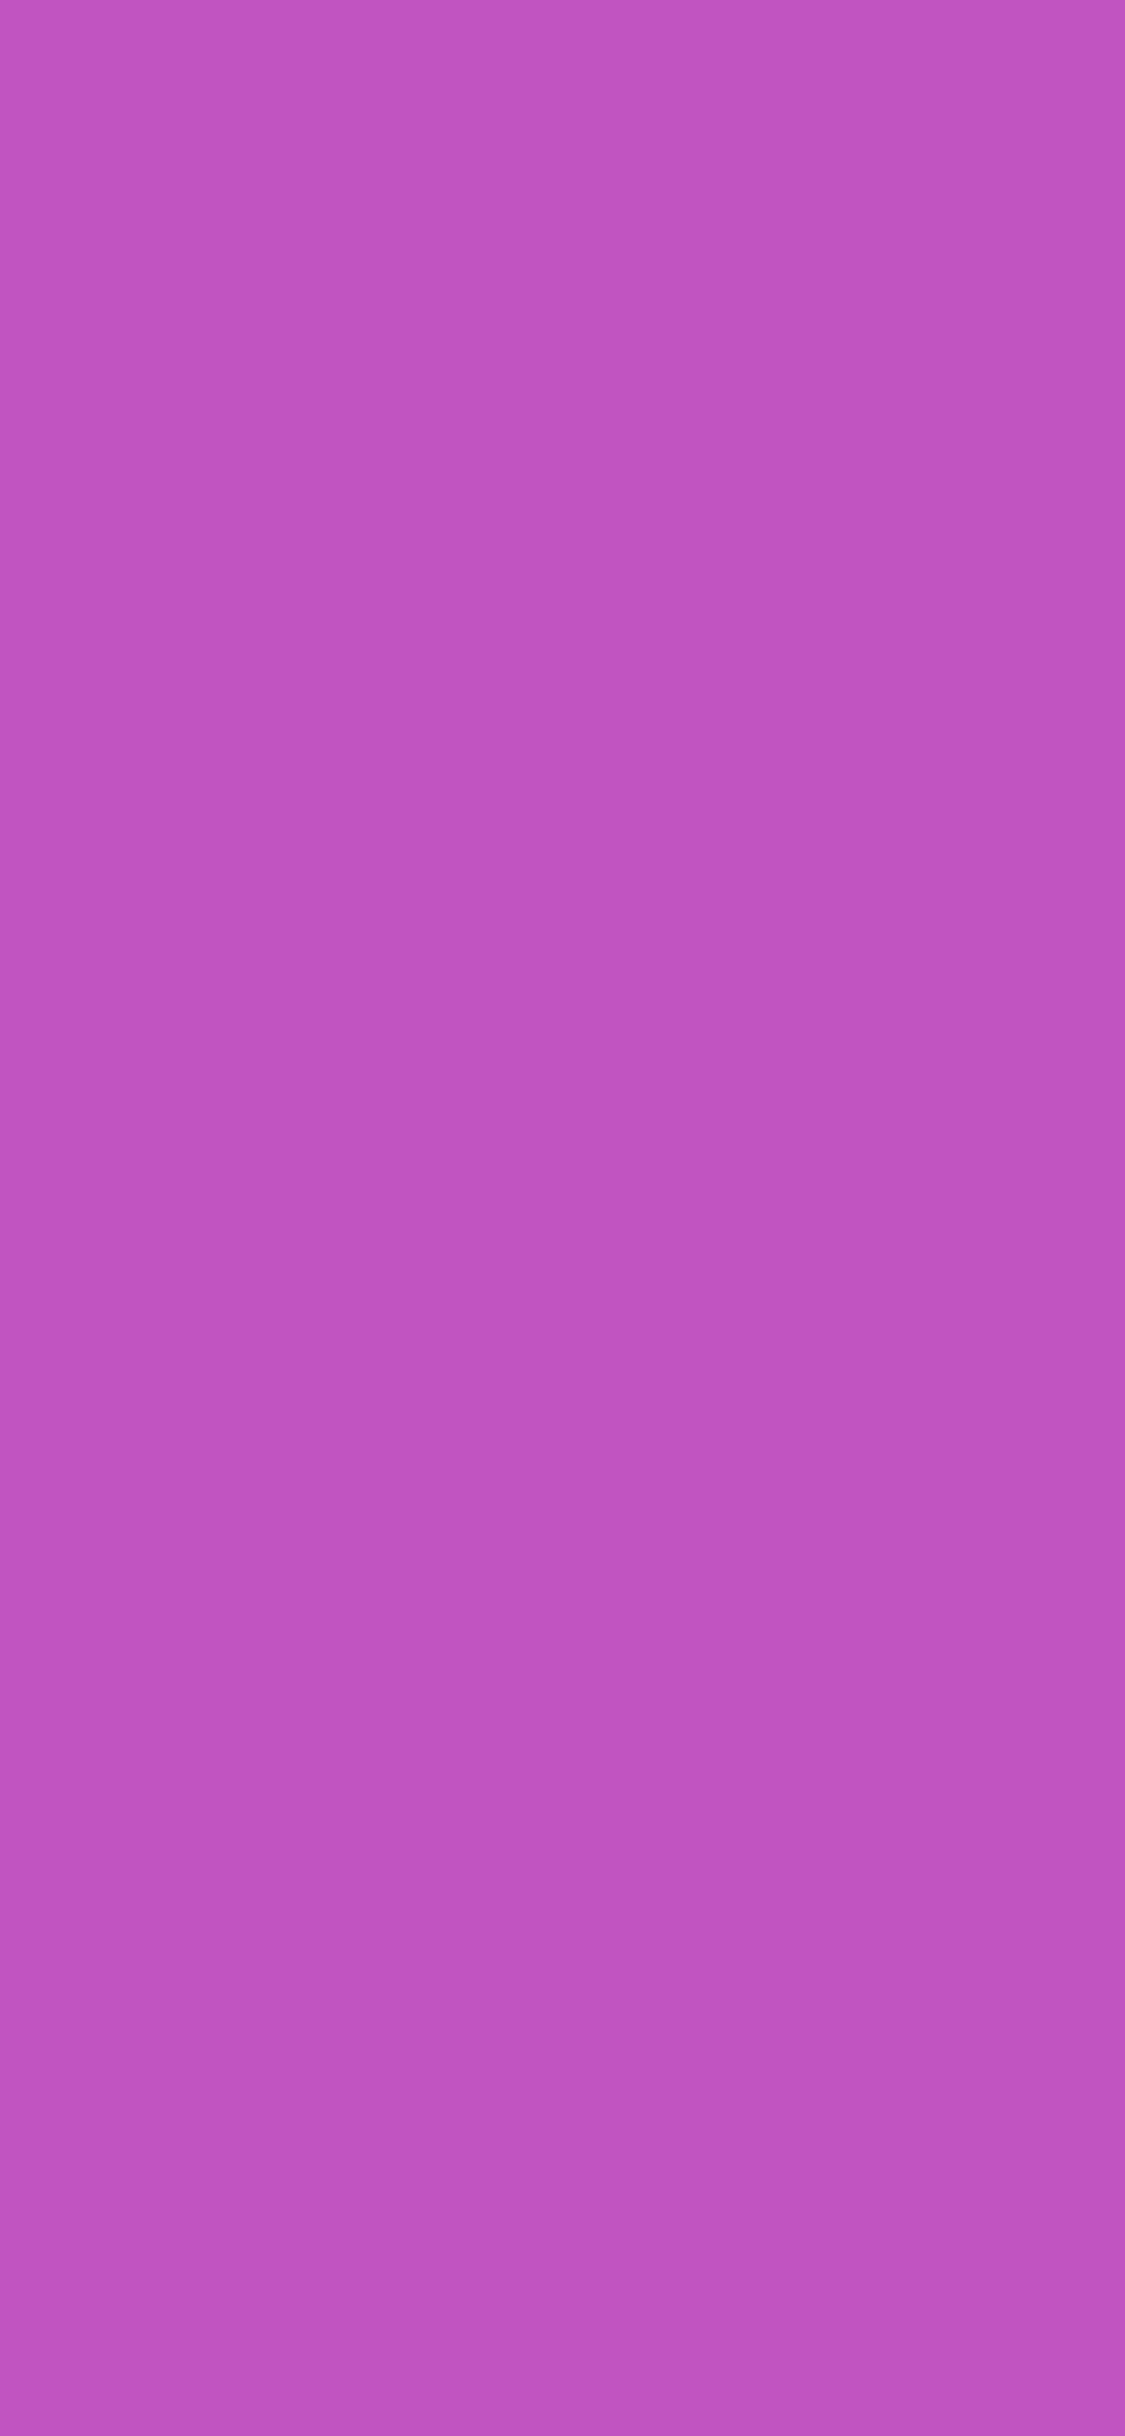 1125x2436 Deep Fuchsia Solid Color Background